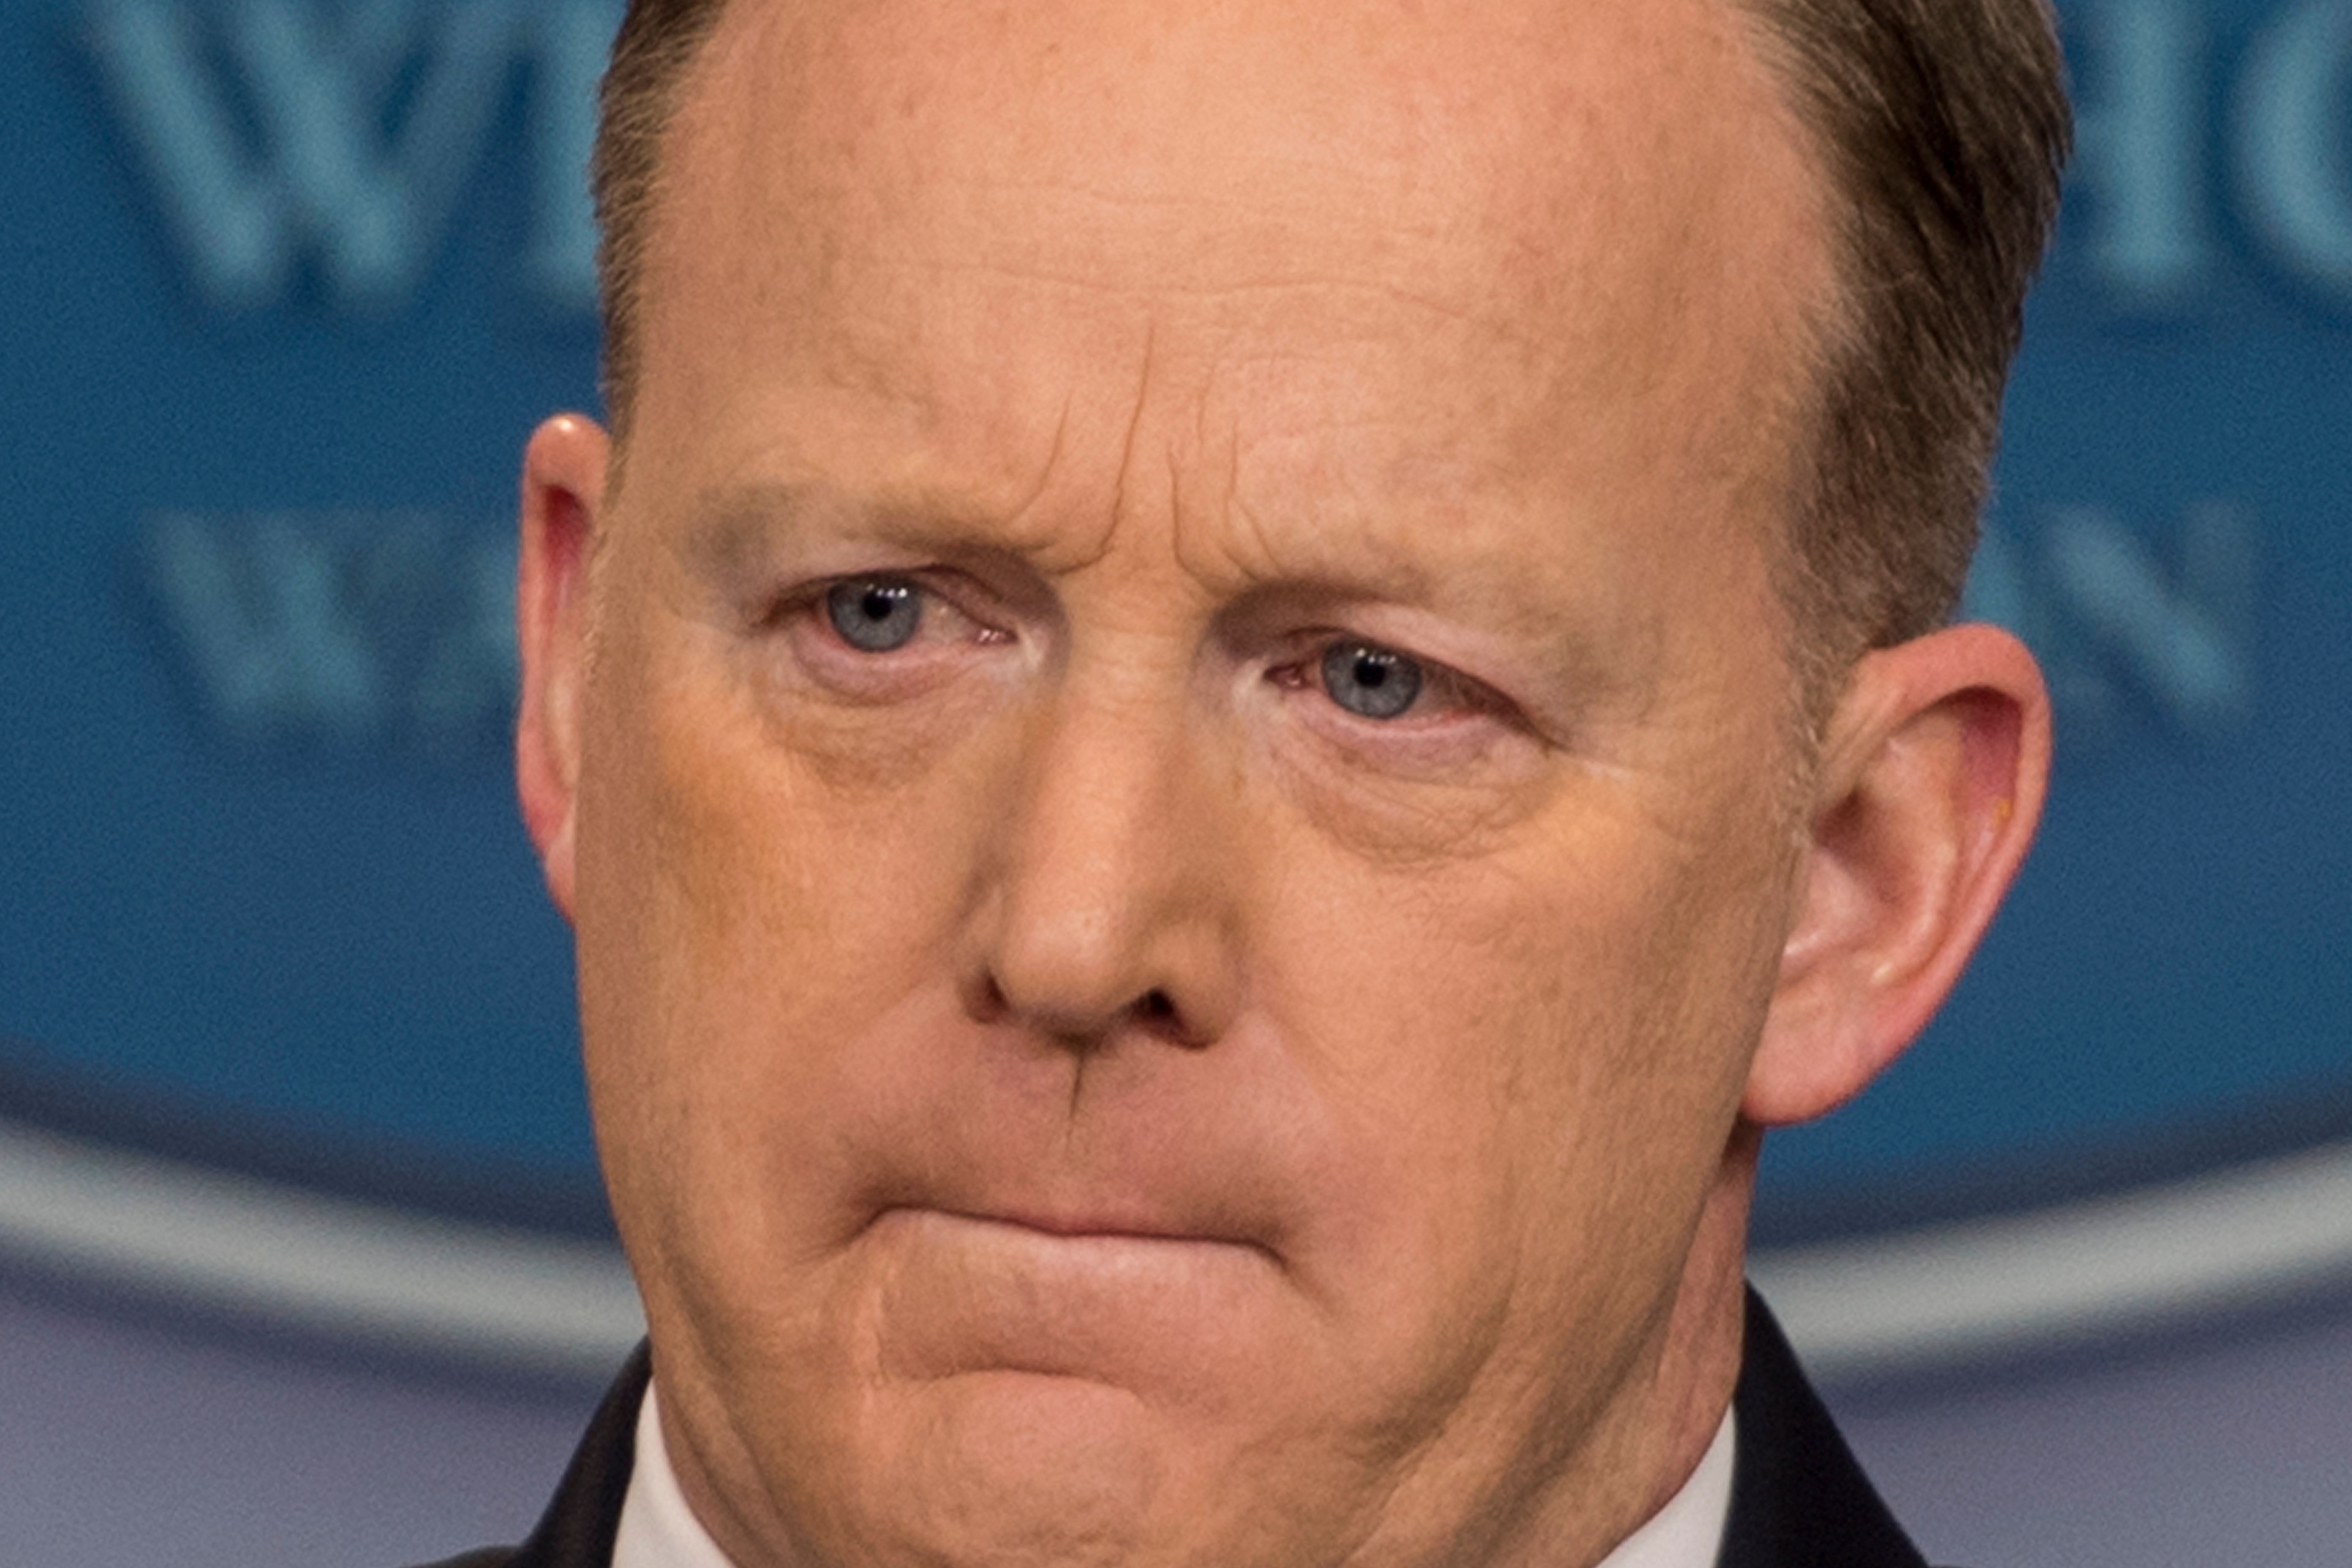 White House Press Secretary Sean Spicer takes questions during the Daily Briefing at the White House in Washington, DC, March 22, 2017. / AFP PHOTO / JIM WATSON        (Photo credit should read JIM WATSON/AFP/Getty Images)